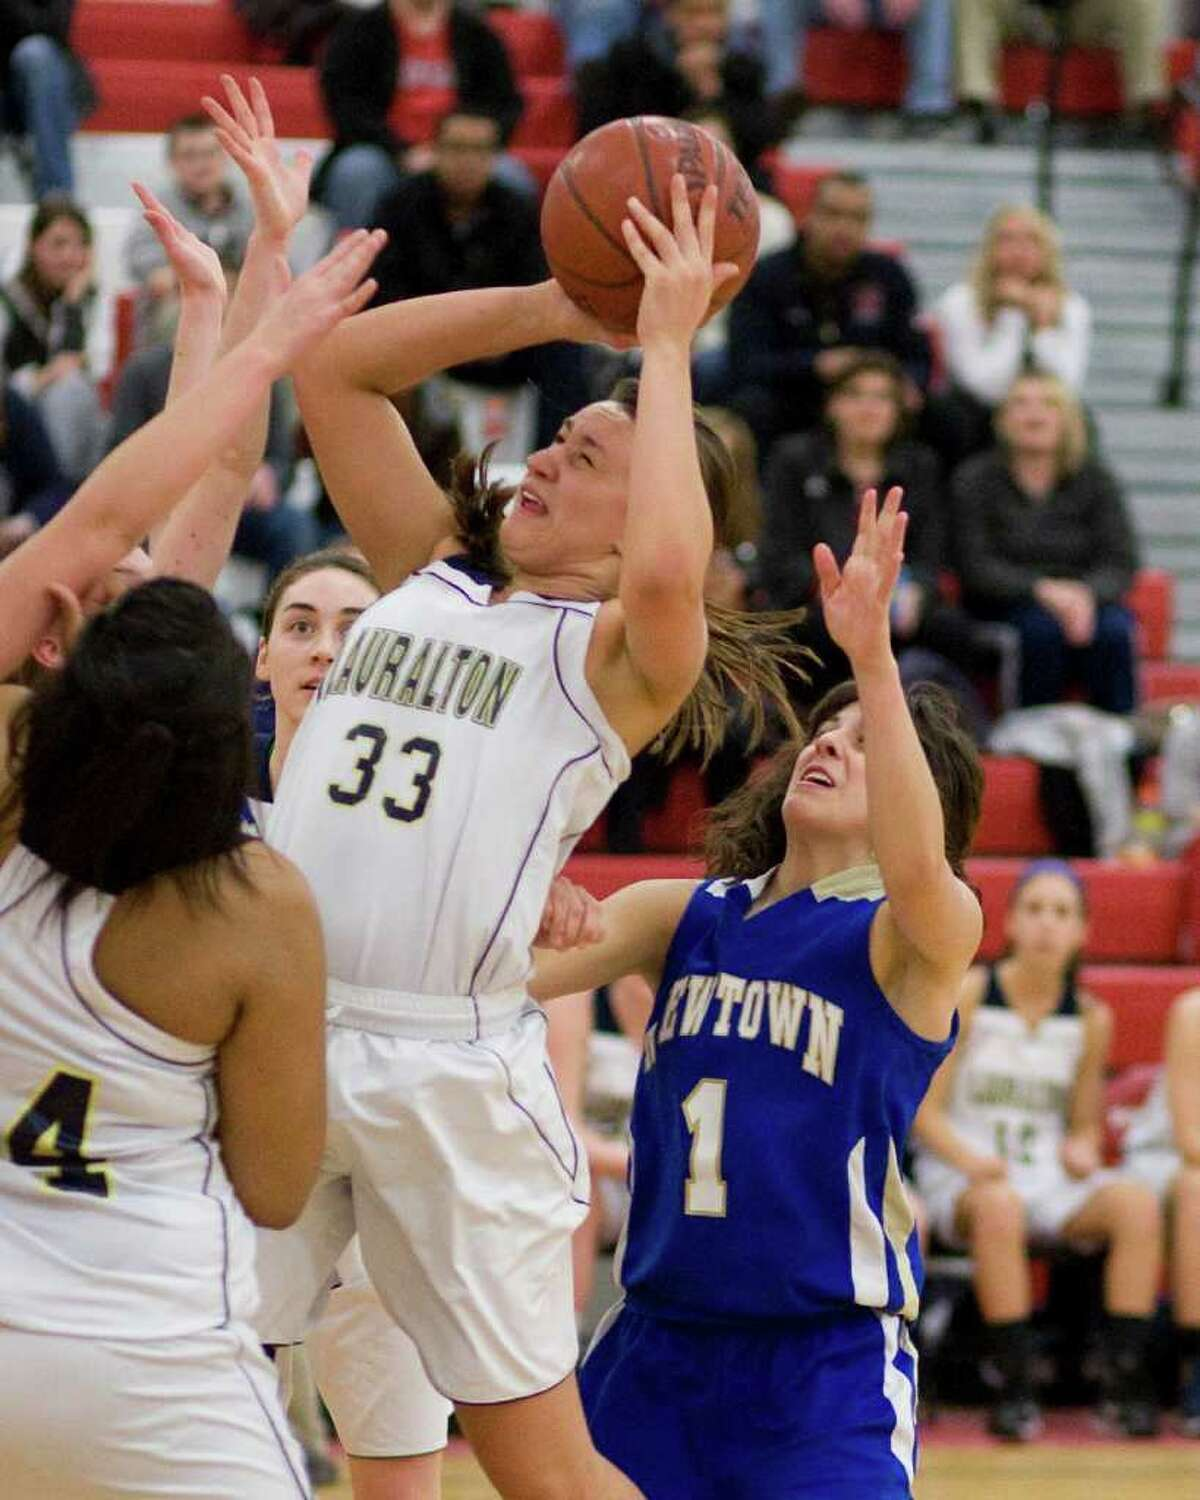 Lauralton Hall's Nicola Matero scores off an offensive rebound against Newtown in the SWC championship game Thursday night at Pomperaug High School.